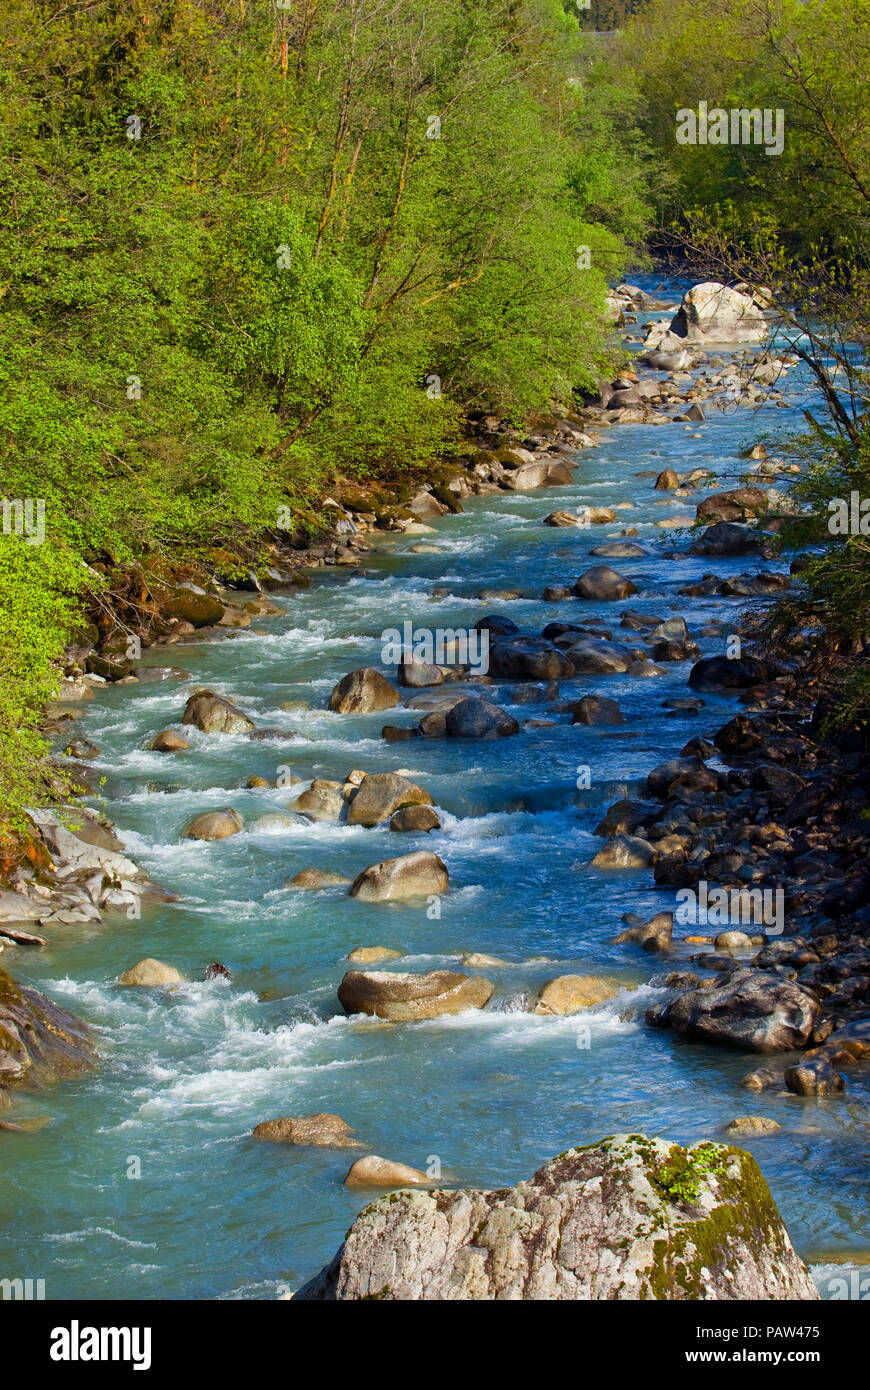 The river from the monte bianco, Italy - Stock Image